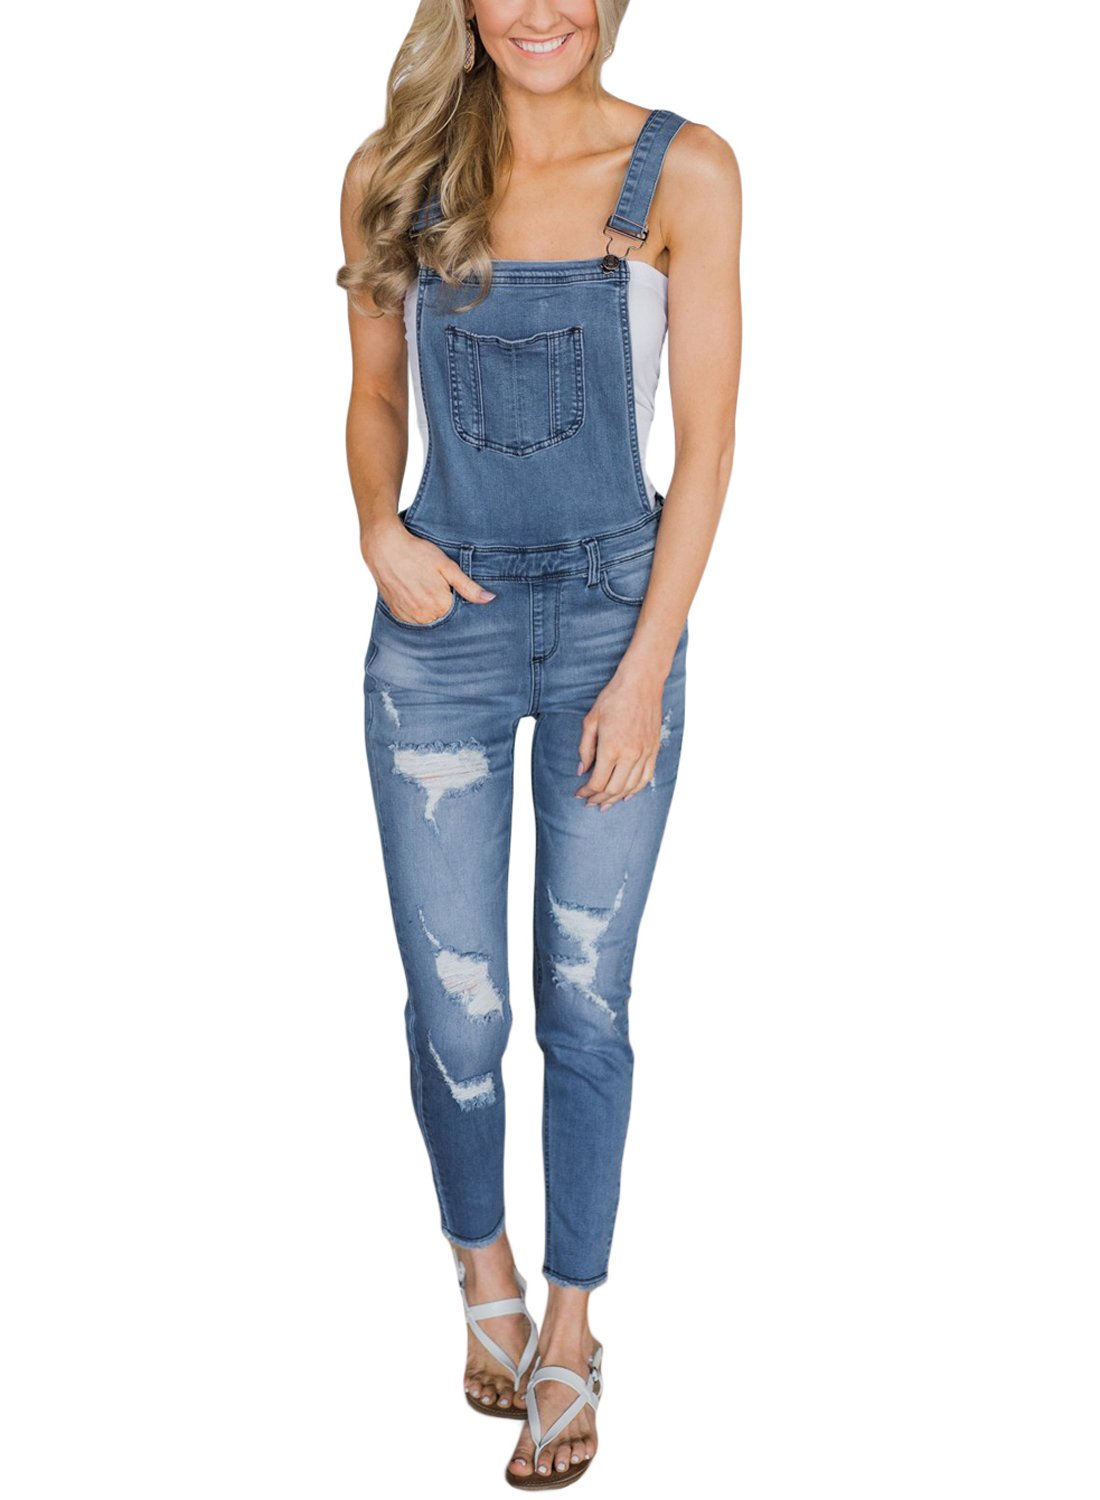 GOSOPIN Women Adjustable Strap Ripped Distressed Original Denim Overalls Medium Light Blue by GOSOPIN